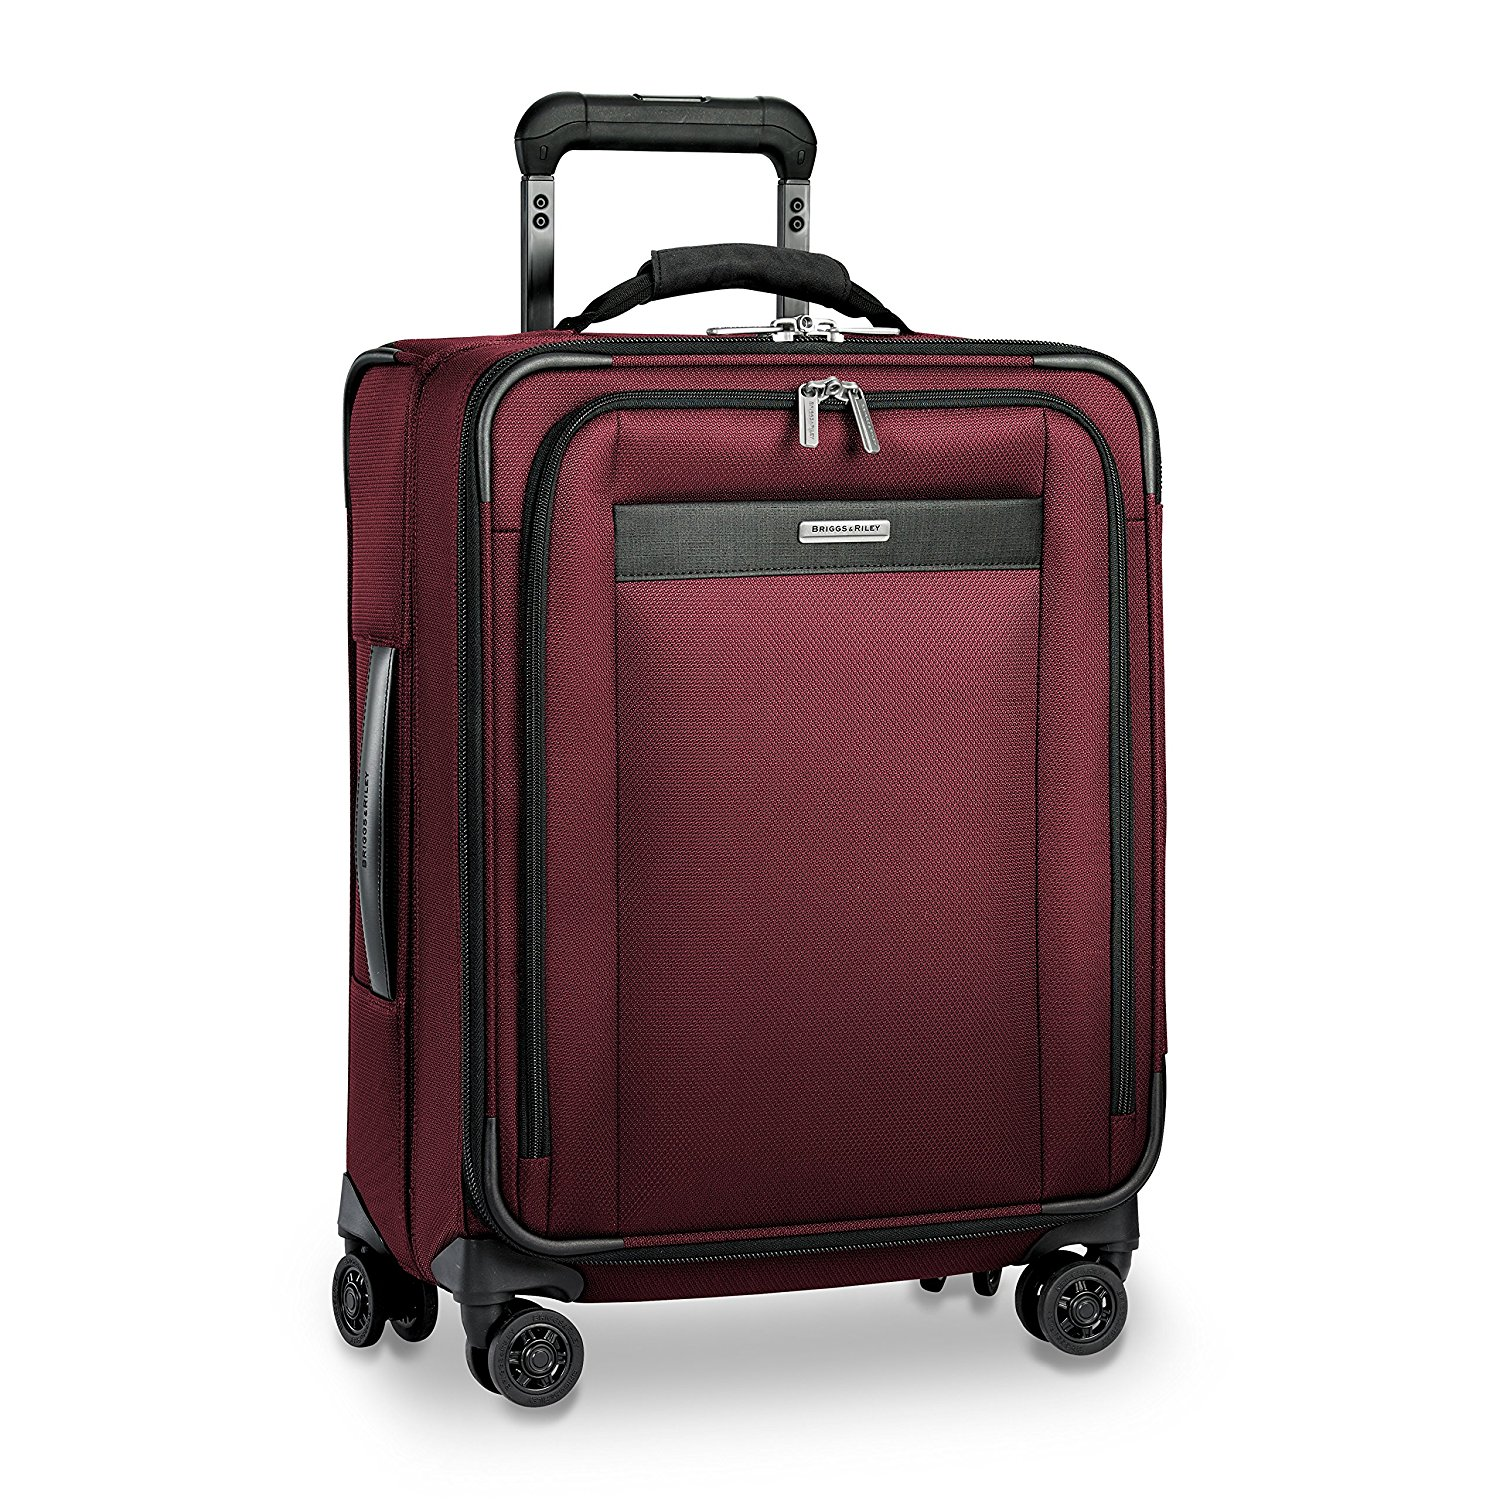 Briggs & Riley Transcend Wide Carry-On Expandable Spinner, 55cm, 60.6 litres, Slate Koffer, 54 cm, liters, Grau (Slate)